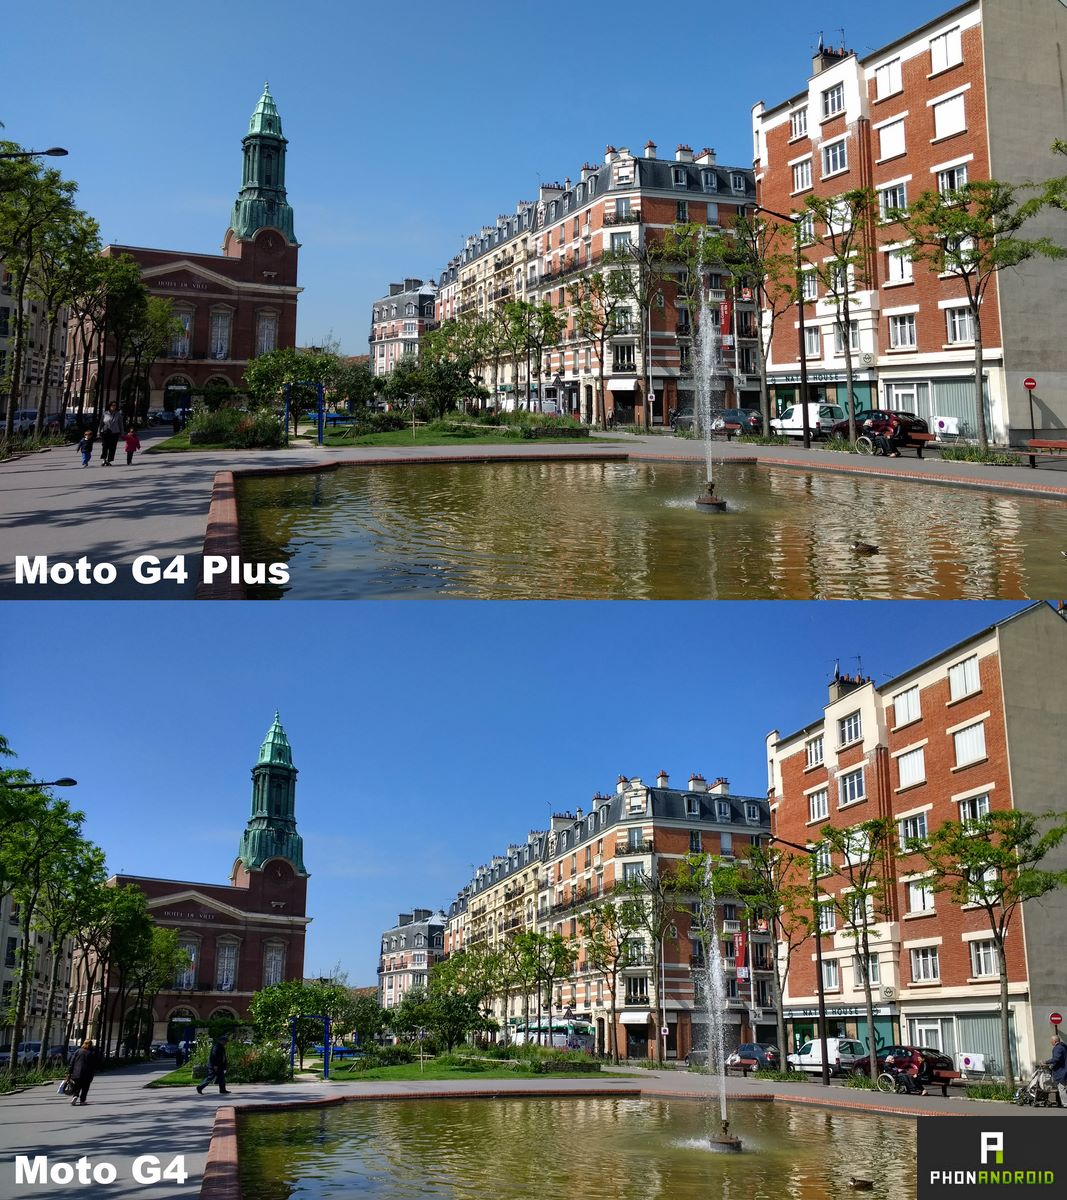 moto g4 plus photo comparative